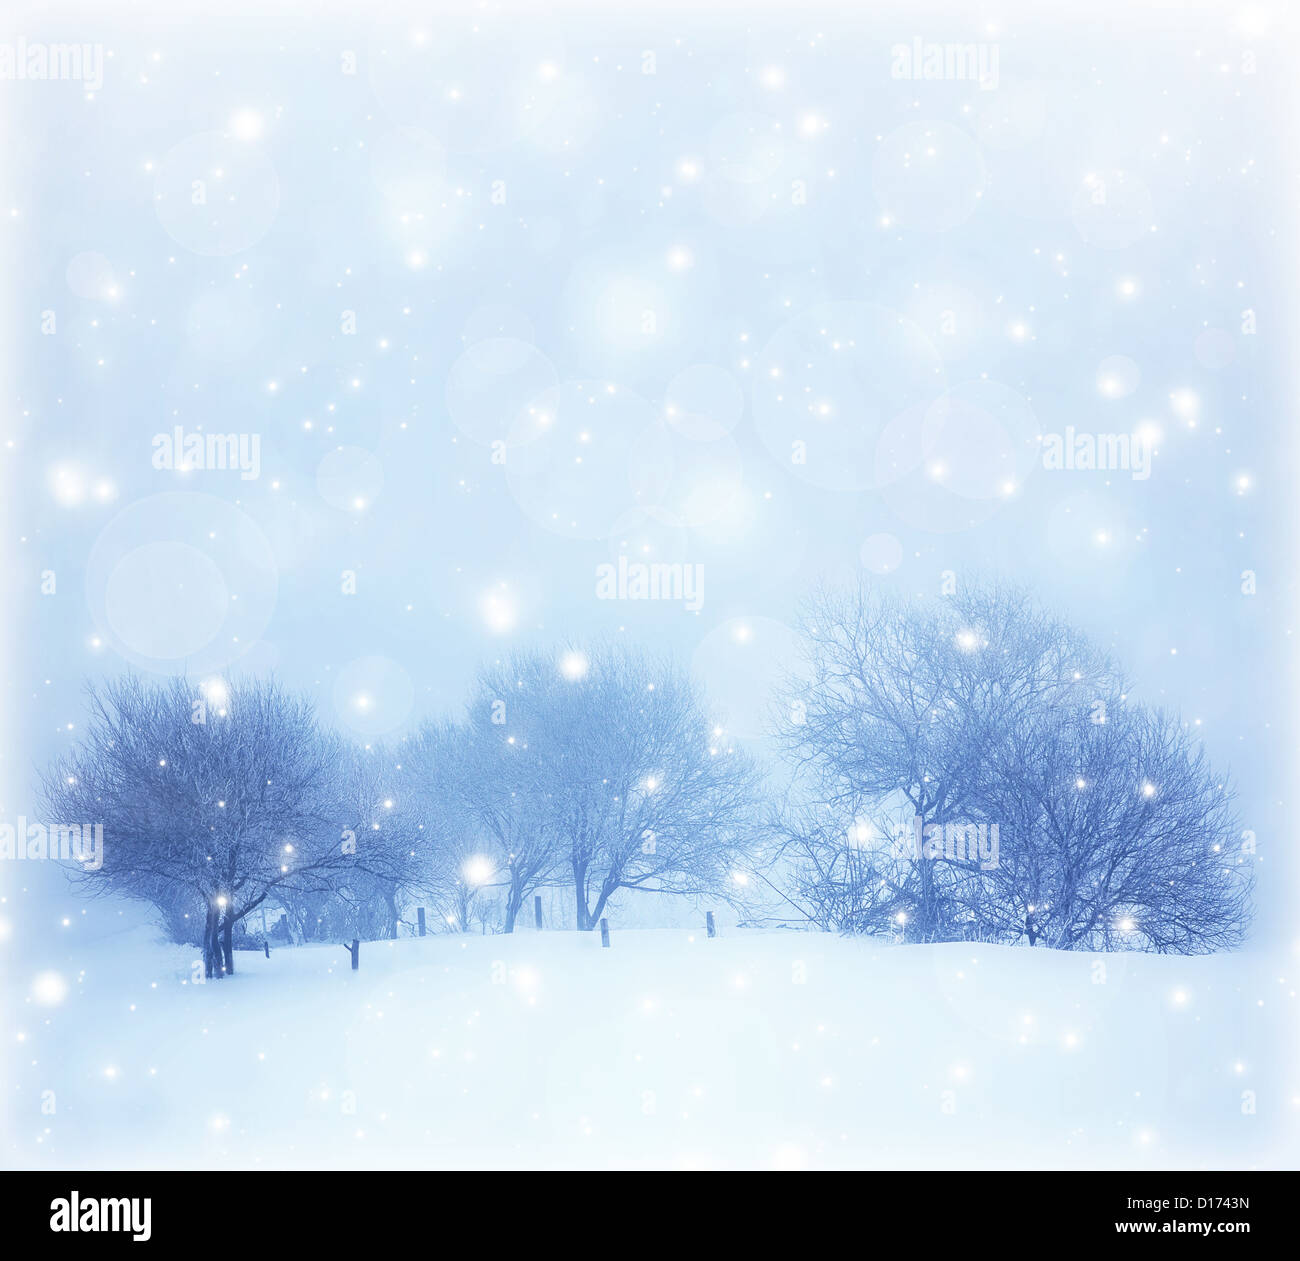 Photo of beautiful snowy landscape, Christmas postcard, snow cover on the trees, seasonal snowfall, snowstorm in - Stock Image